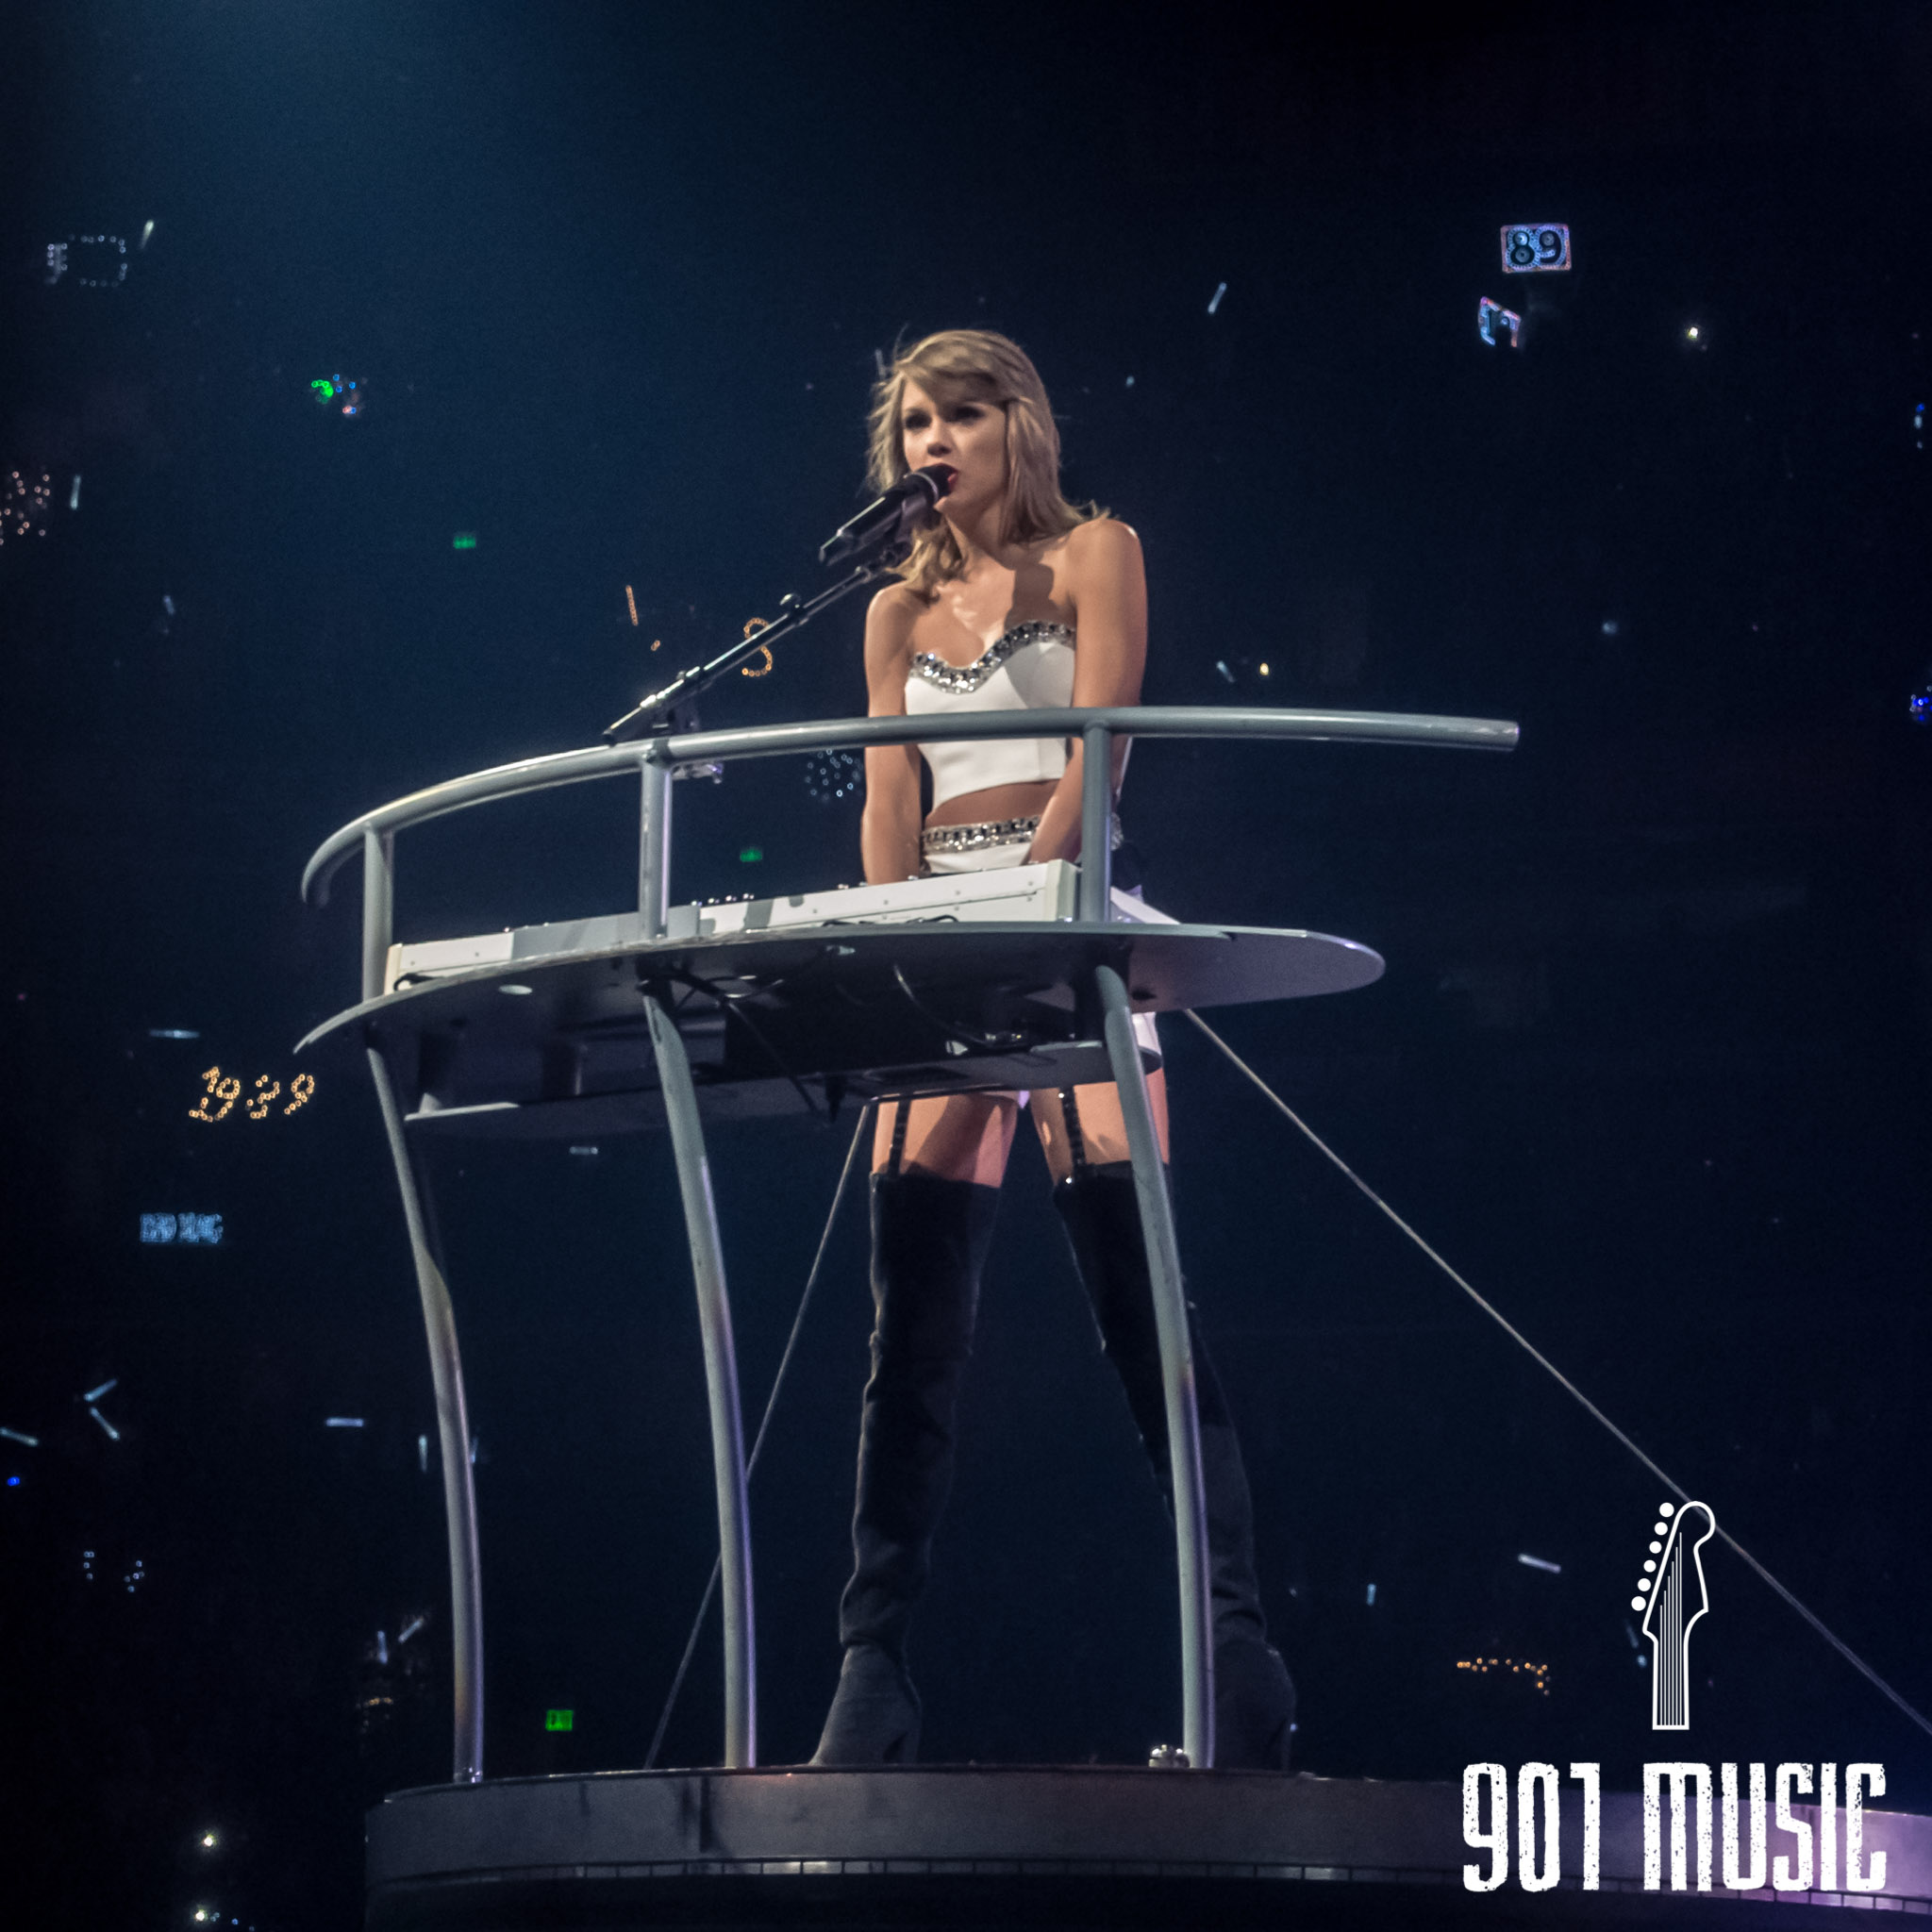 jr-0926-Taylor Swift-17.jpg